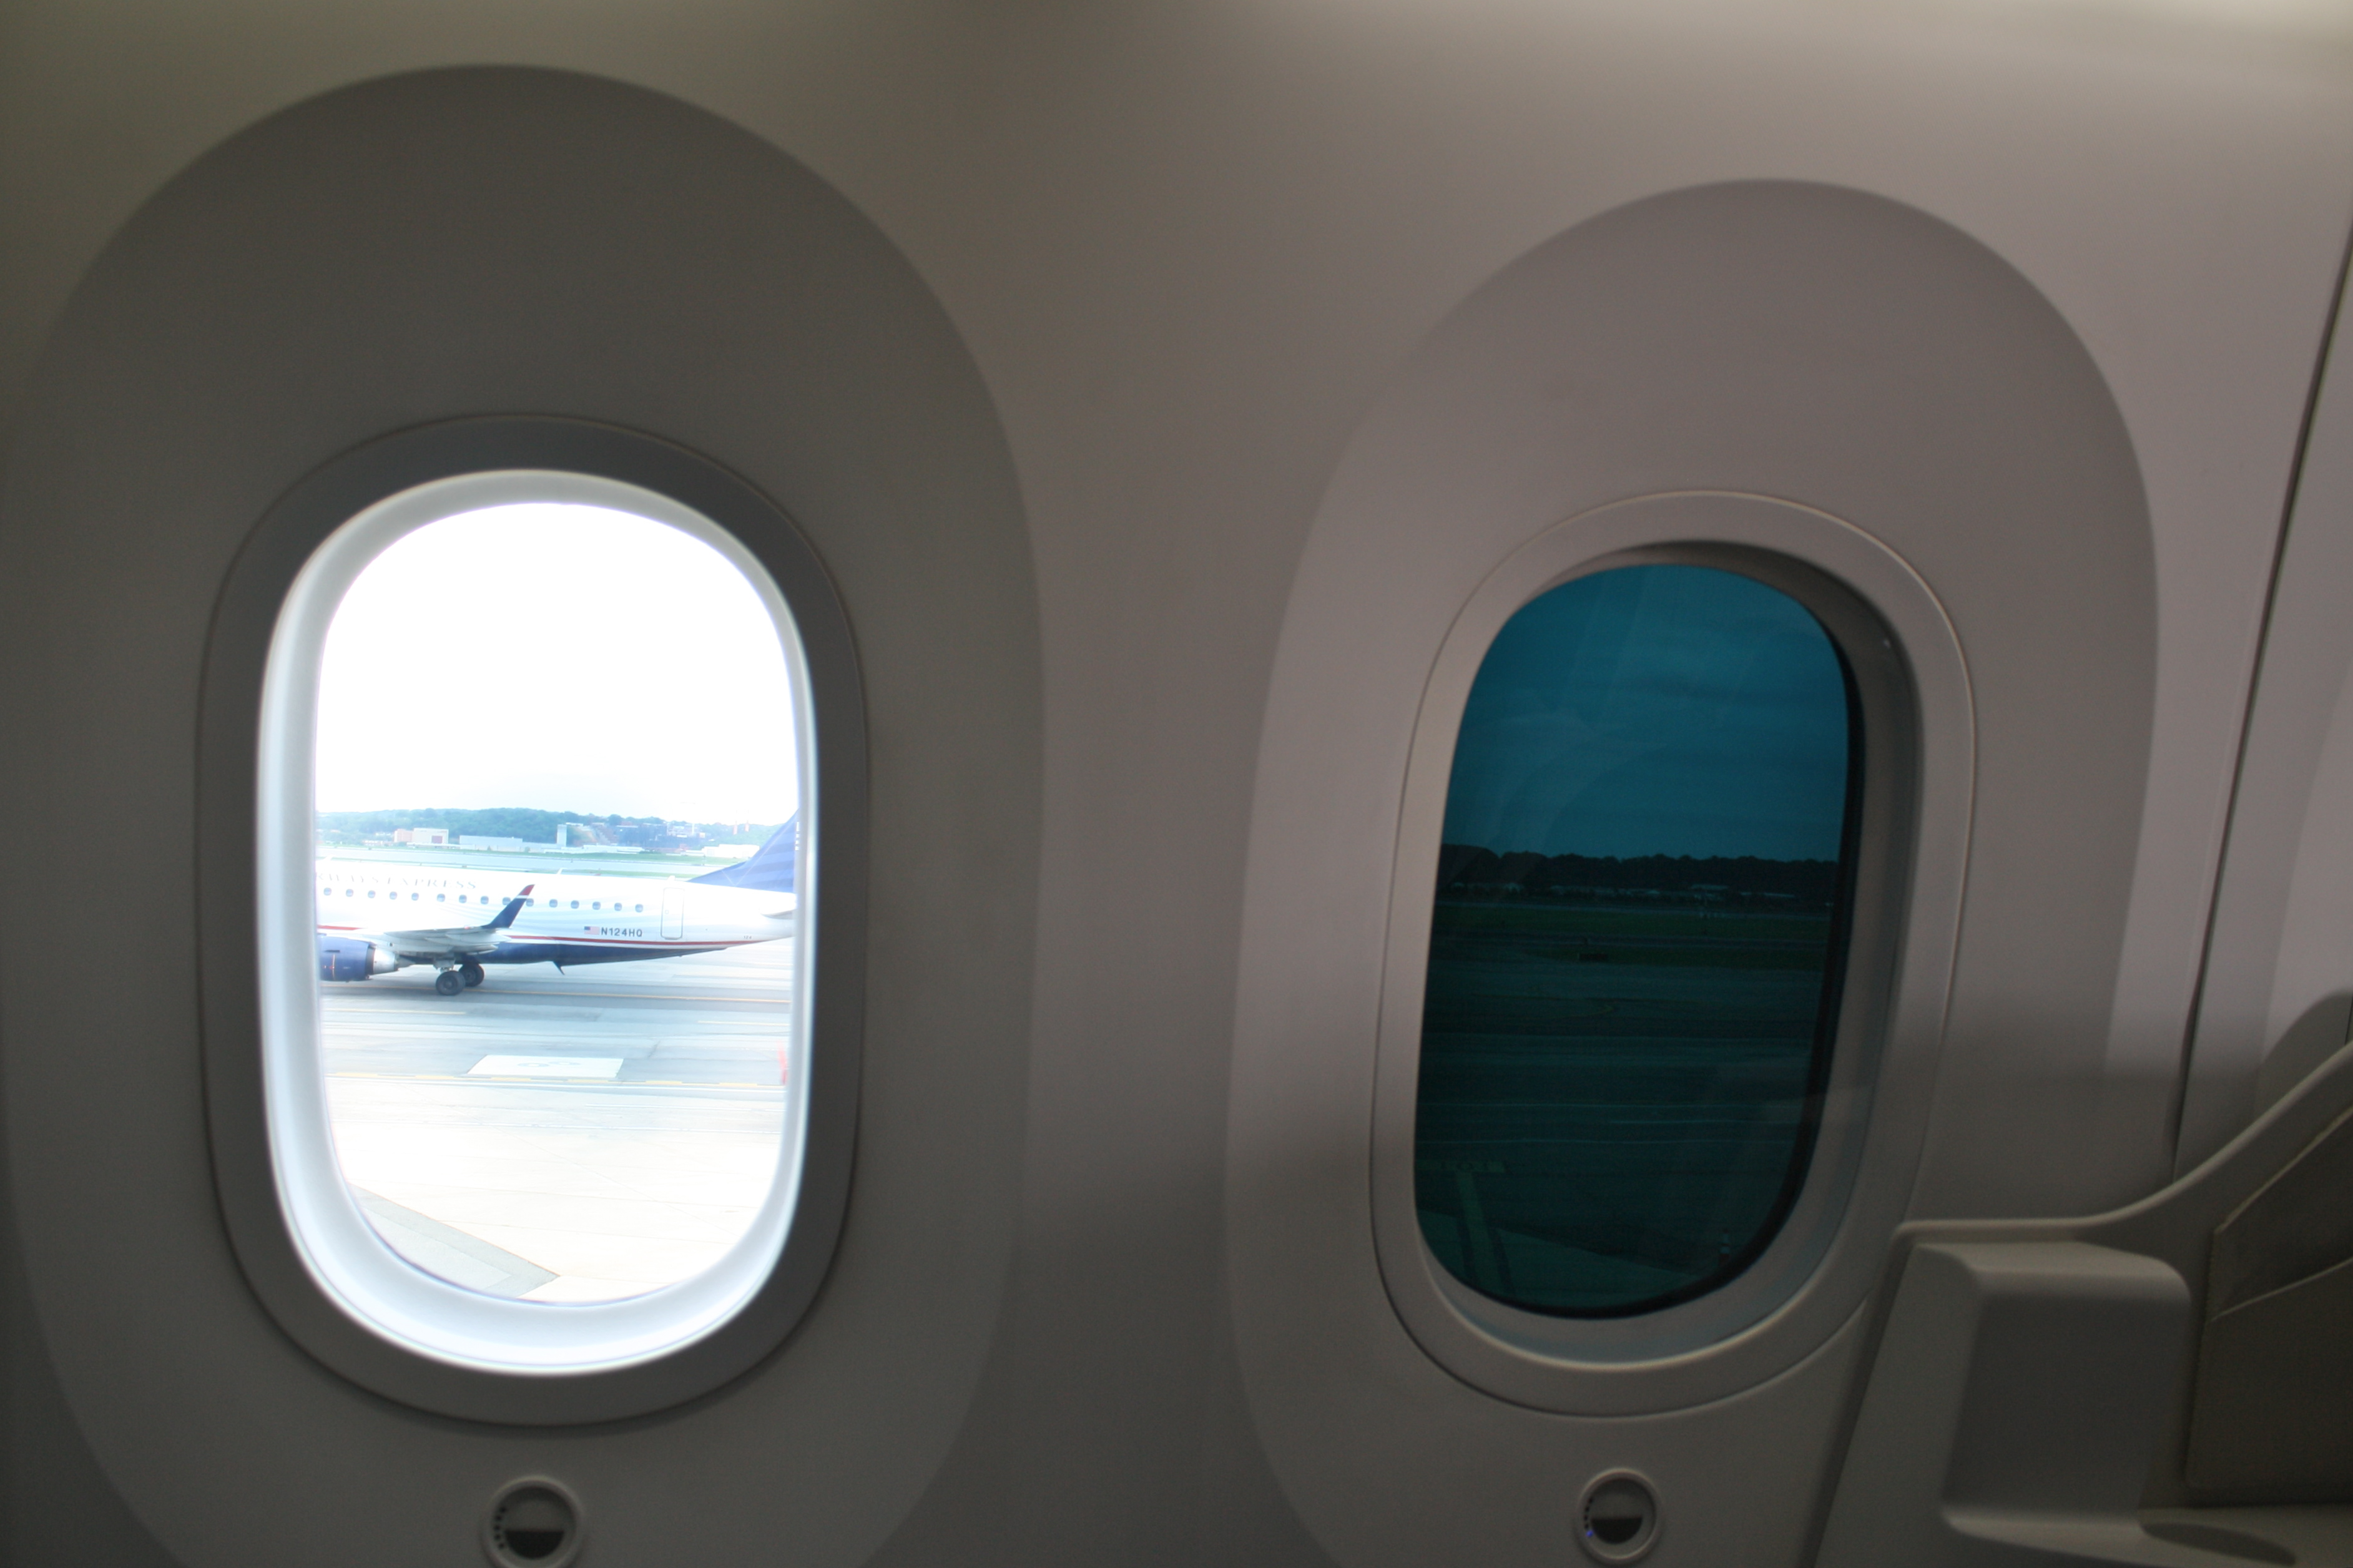 Displaying 14 gt images for boeing dreamliner interior windows